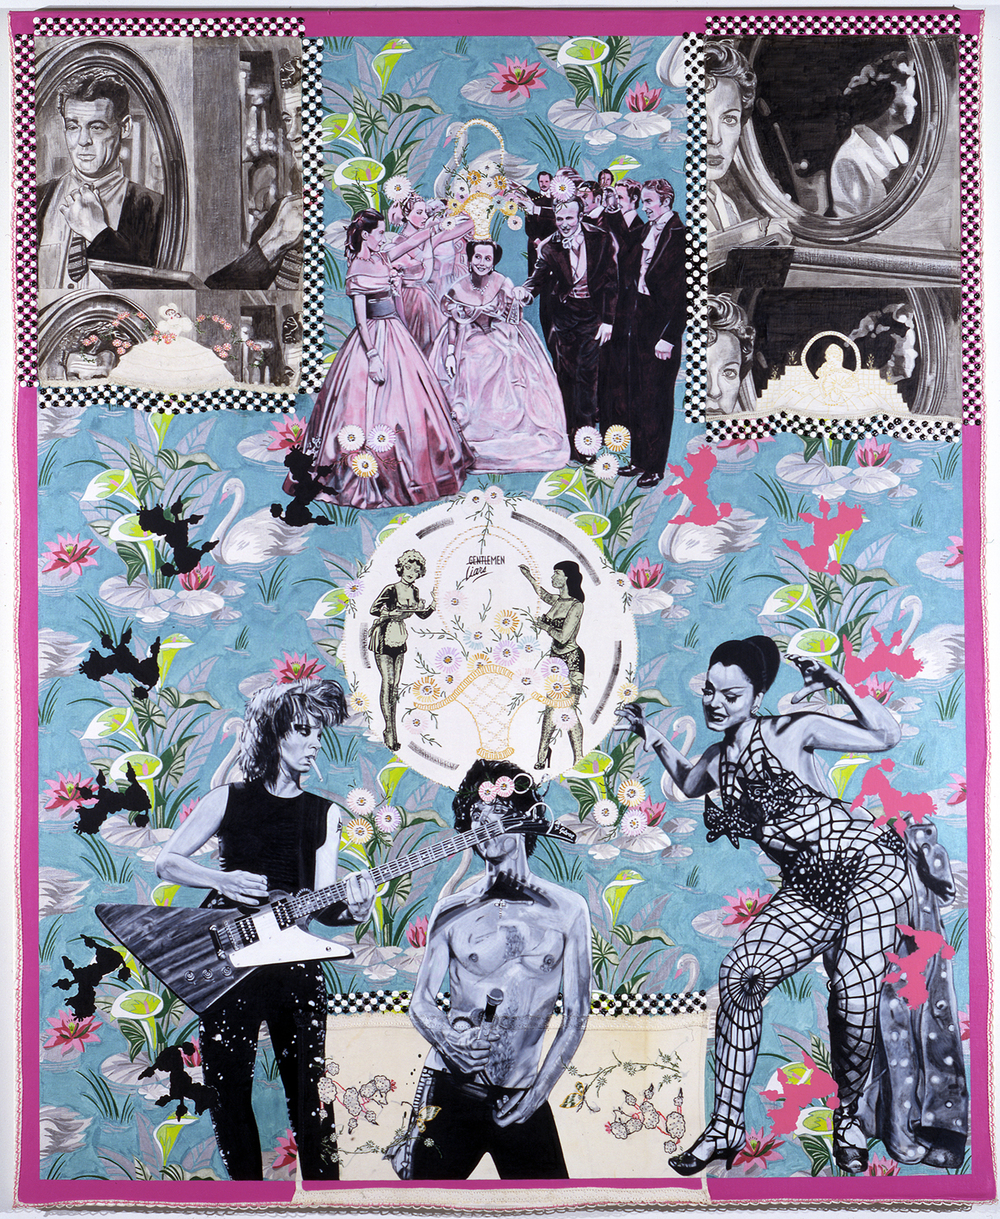 "Carole Caroompas, ""Hester And Zorro: In Quest of a New World: Ladies, Gentlemen, Master, Servant"", 2000, acrylic on found embroidery over canvas, 84 x 72 inches"